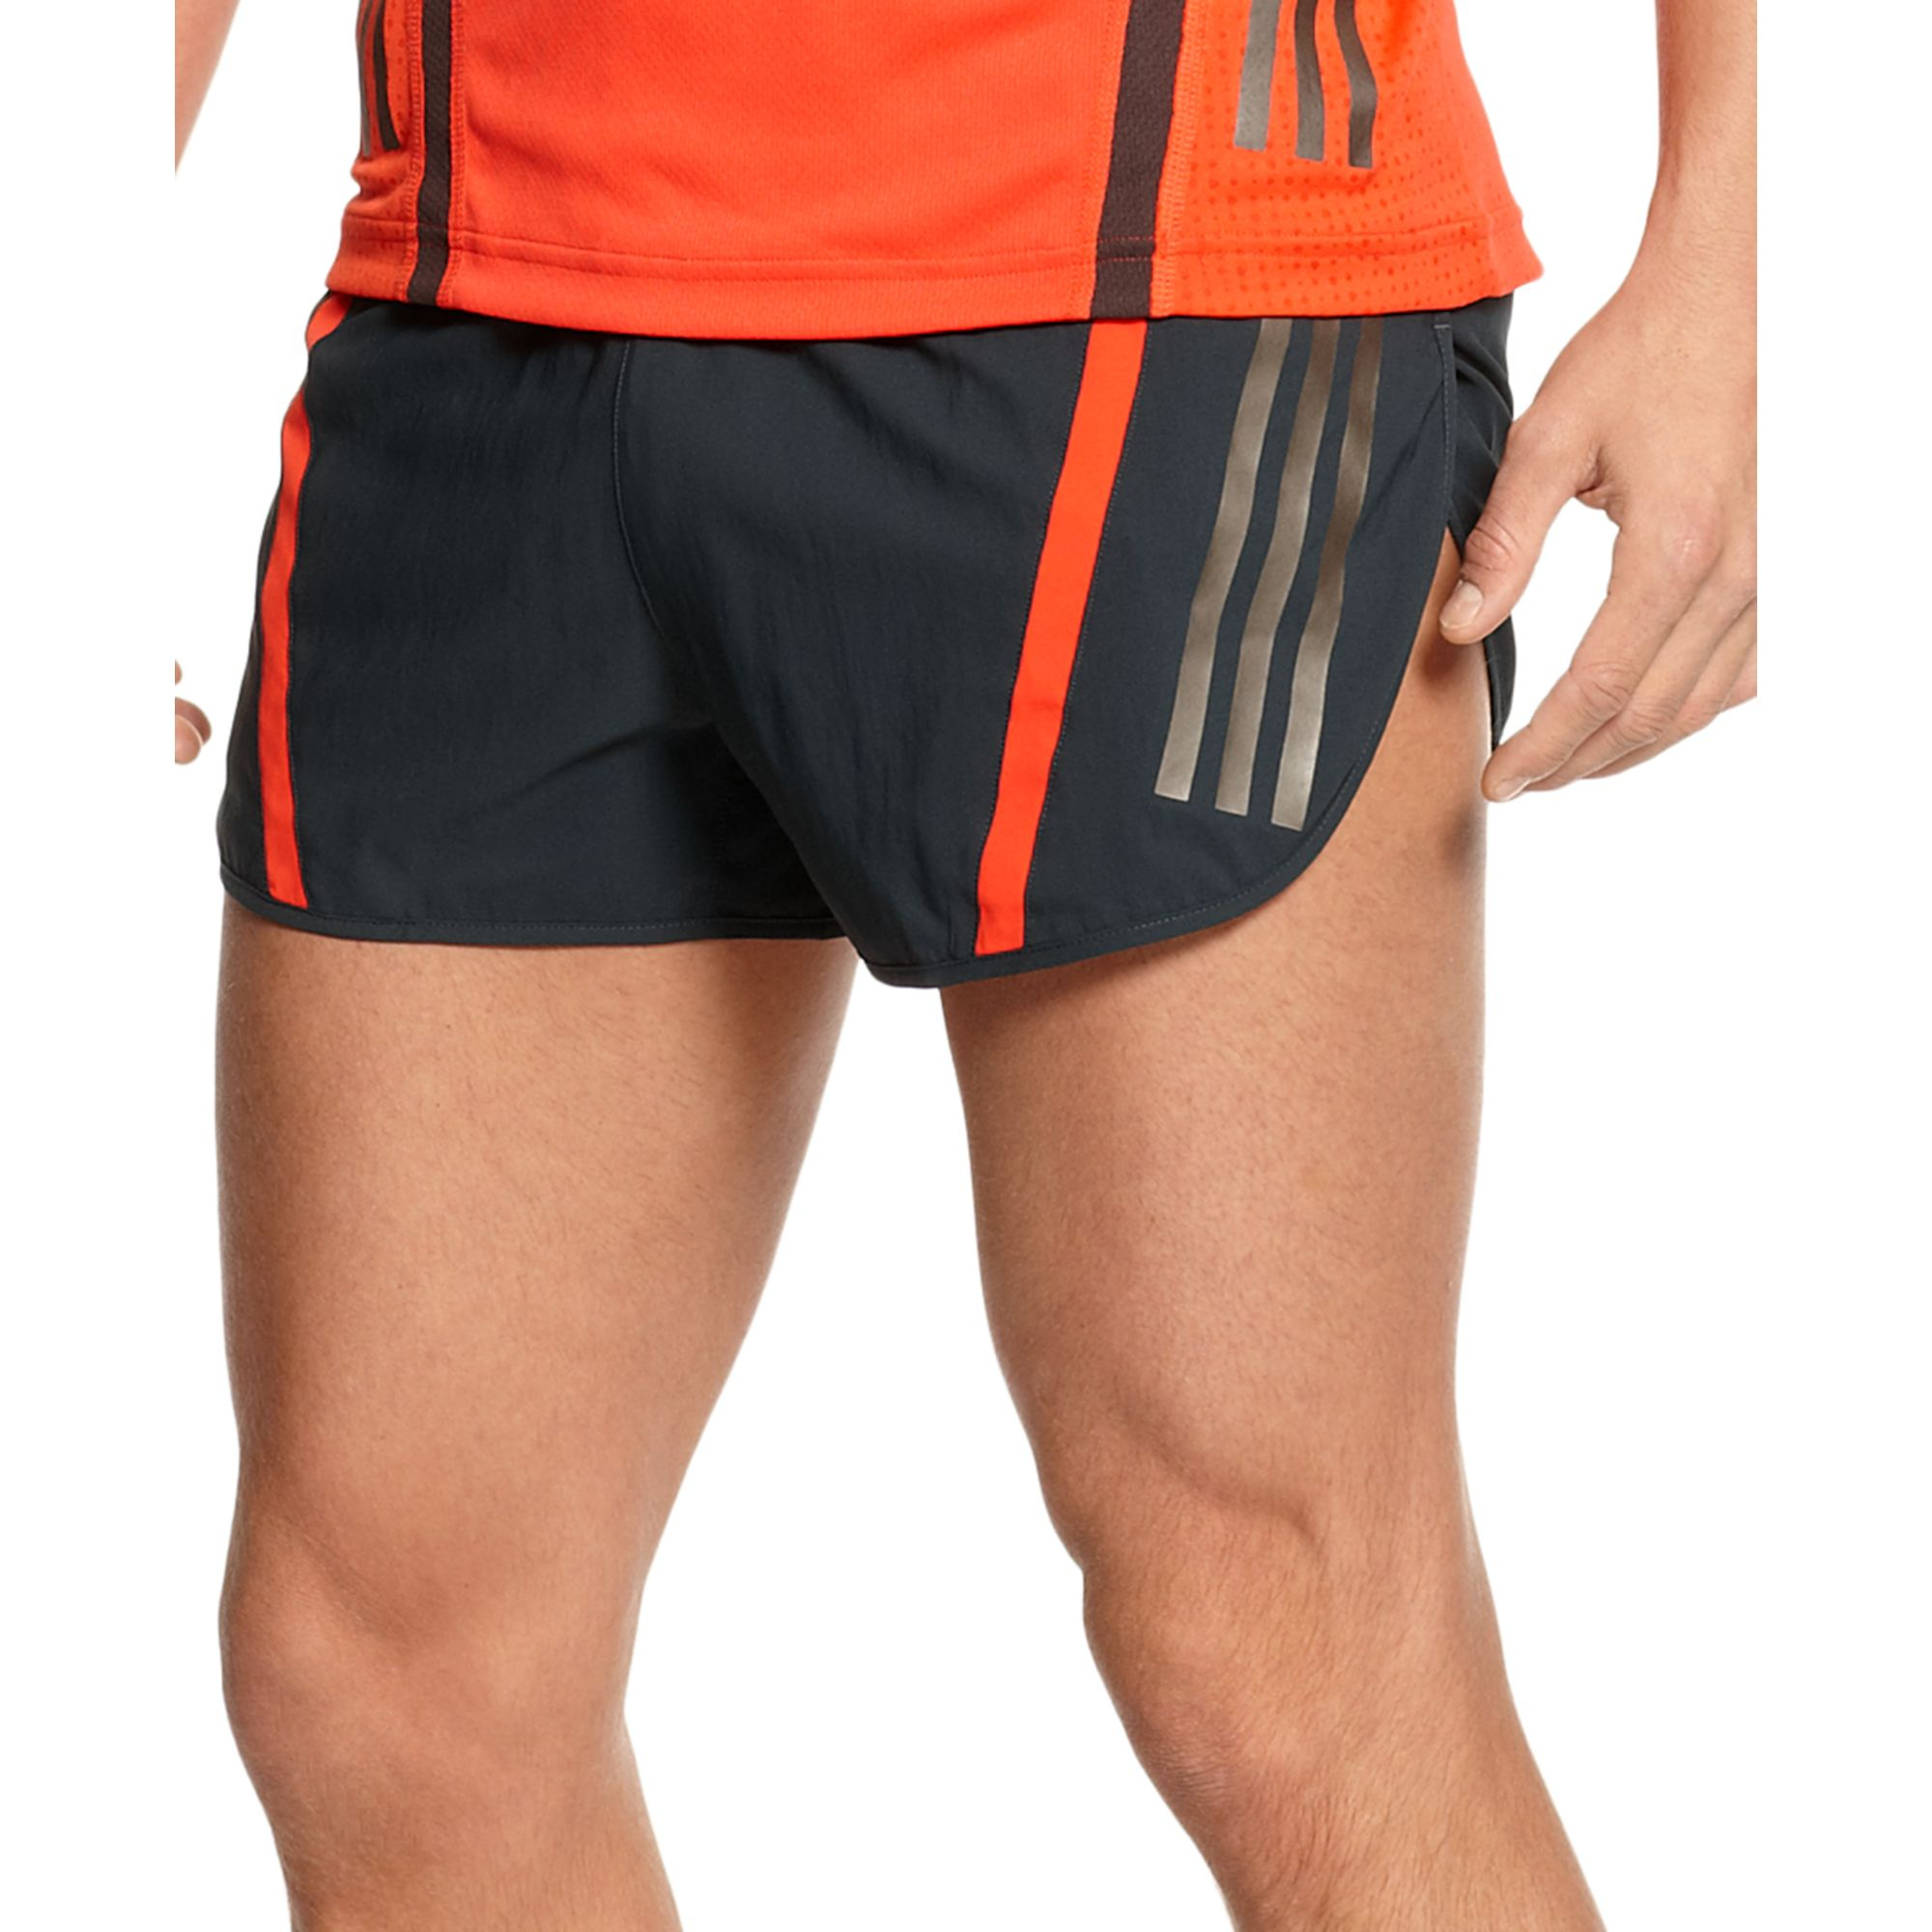 Shop running shirts, shorts and jackets for cold or hot weather for men and women. Buy reflective running tops for night time jogs or jogging shirts for the gym.